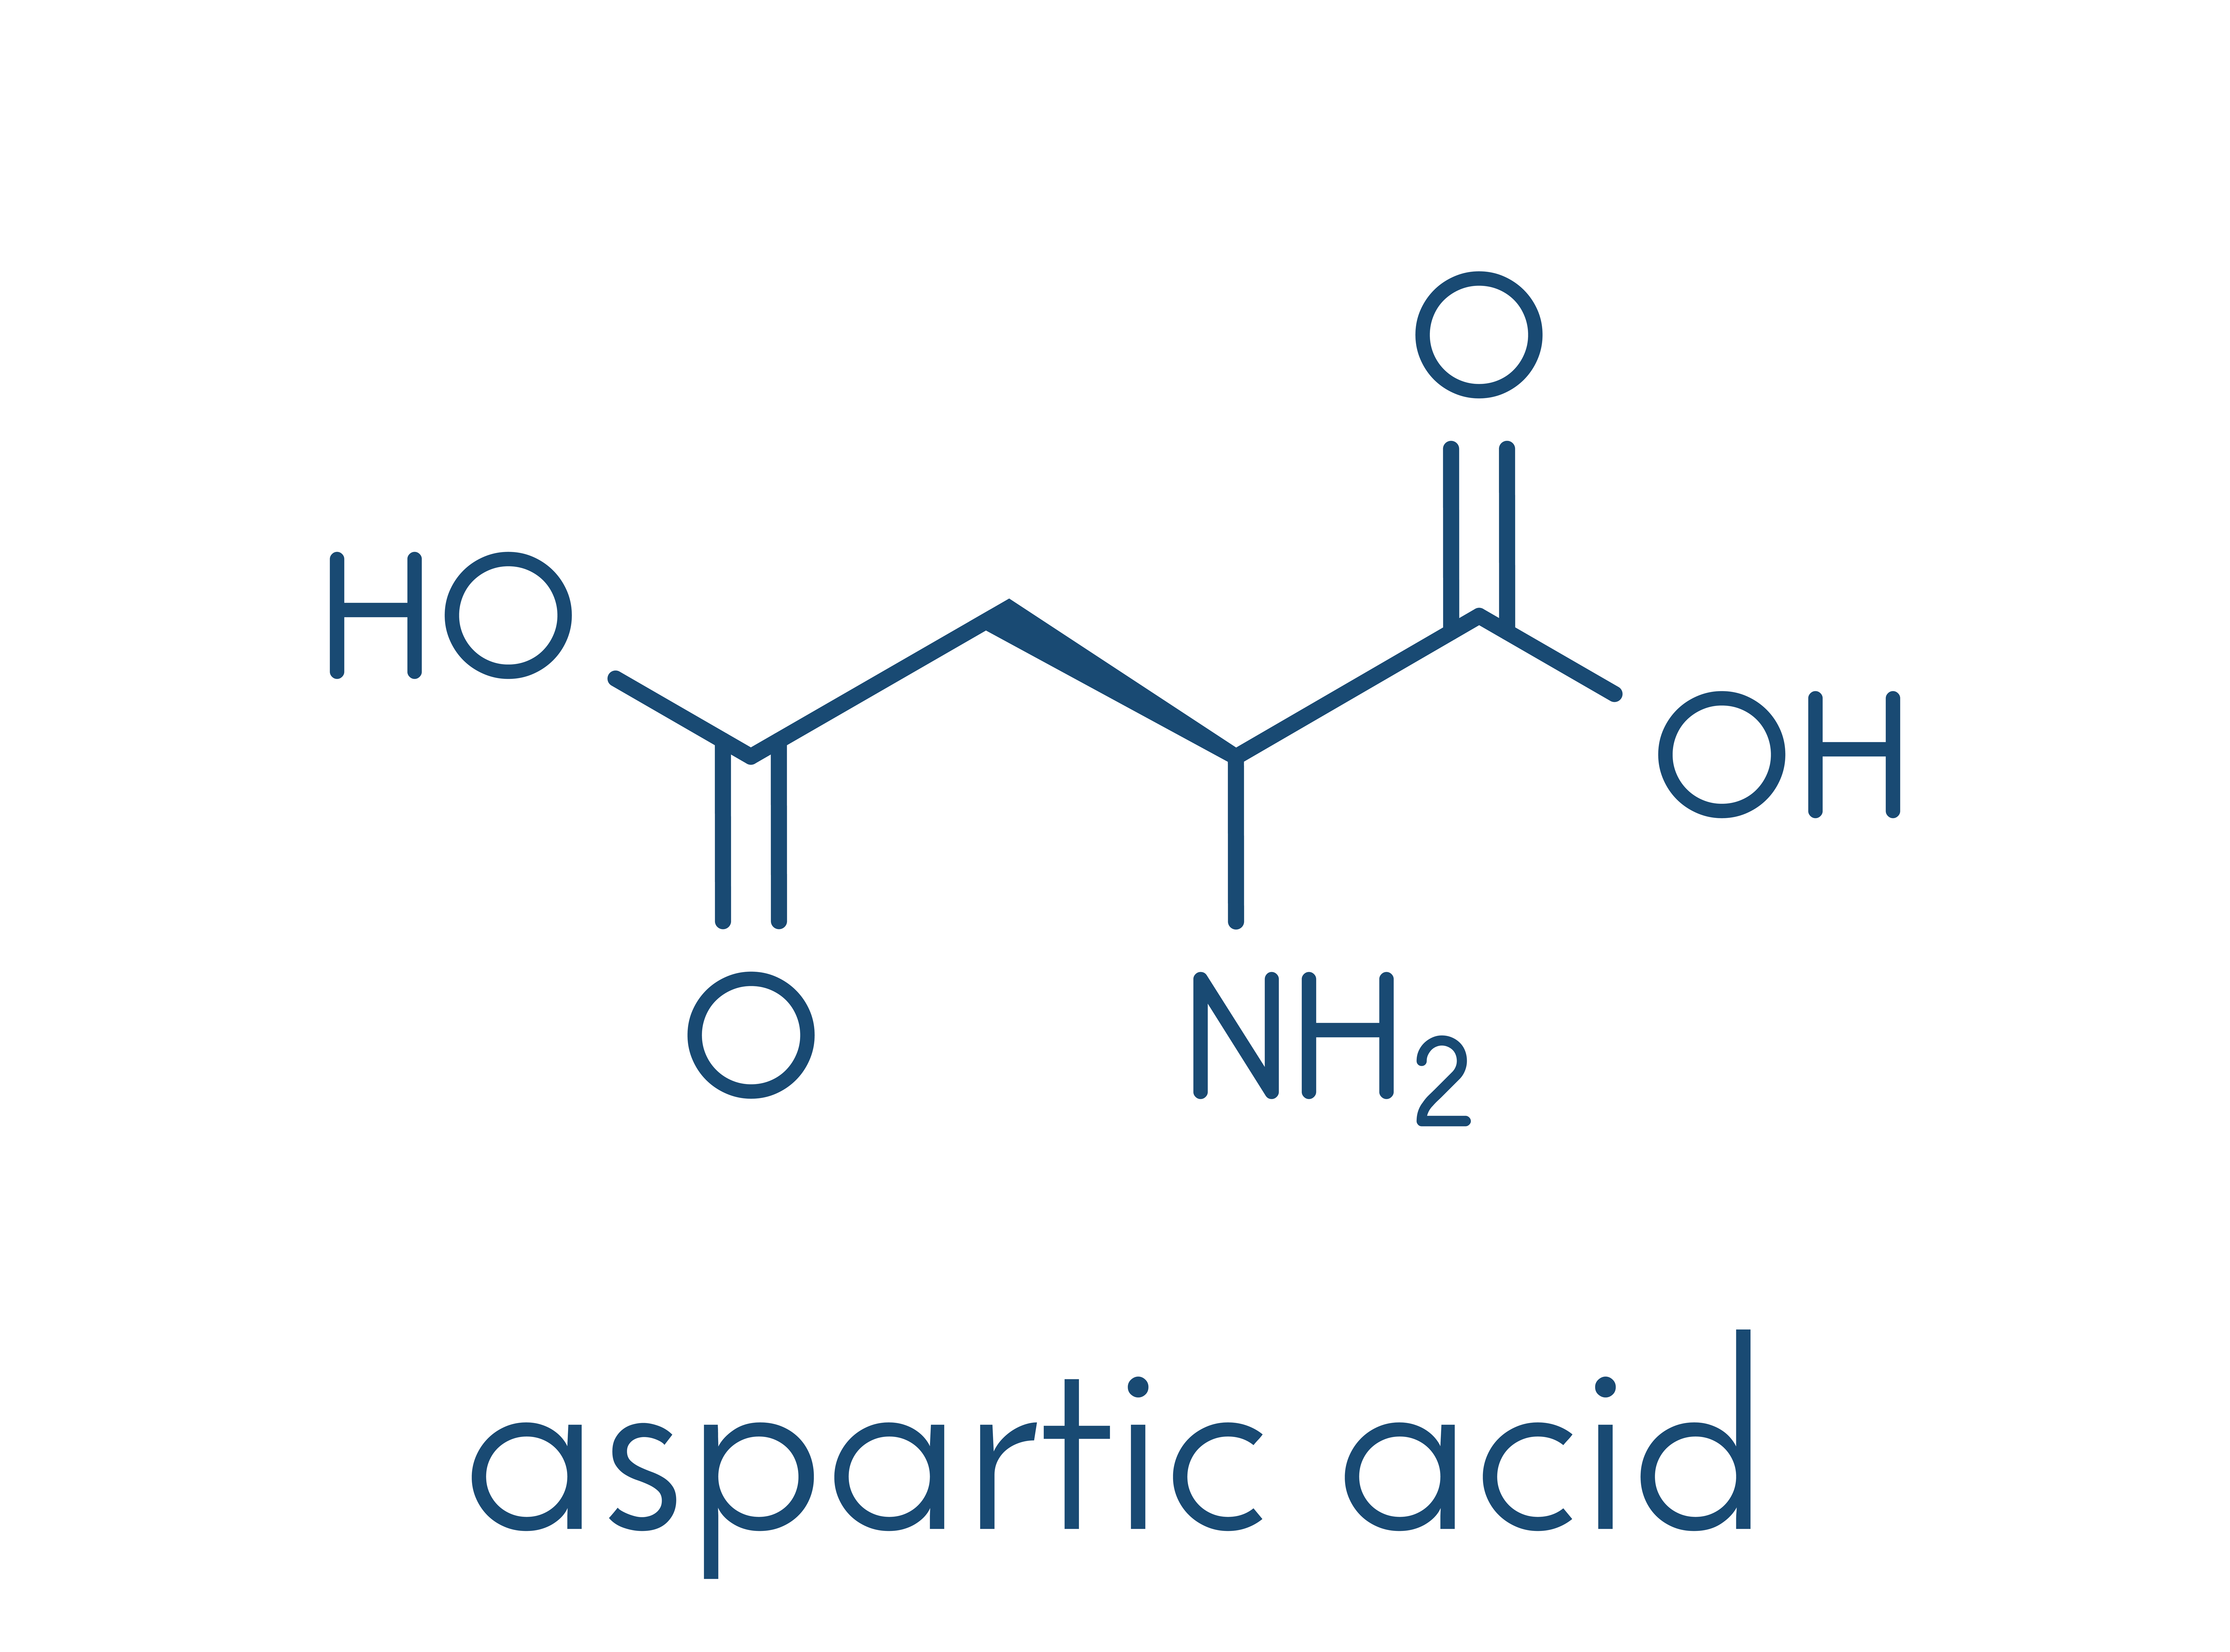 DAA - D-aspartic acid chemical formula